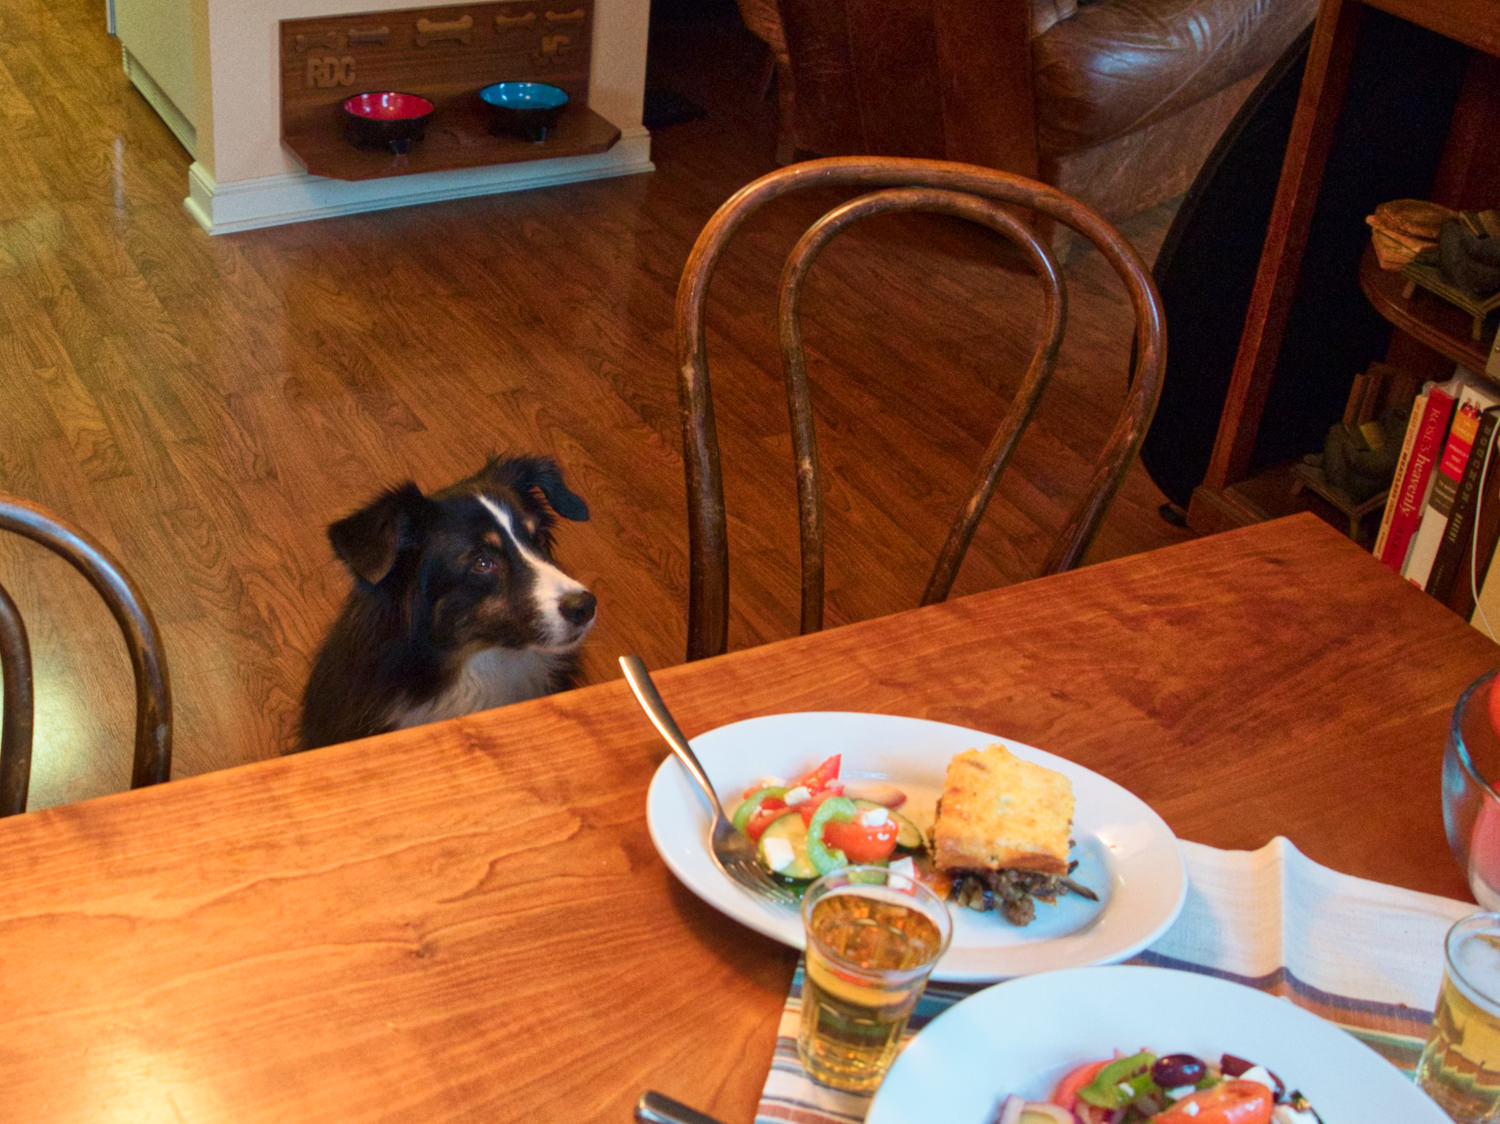 Riley literally sits right by your chair, hoping you'll pick him up and let him eat off the table.